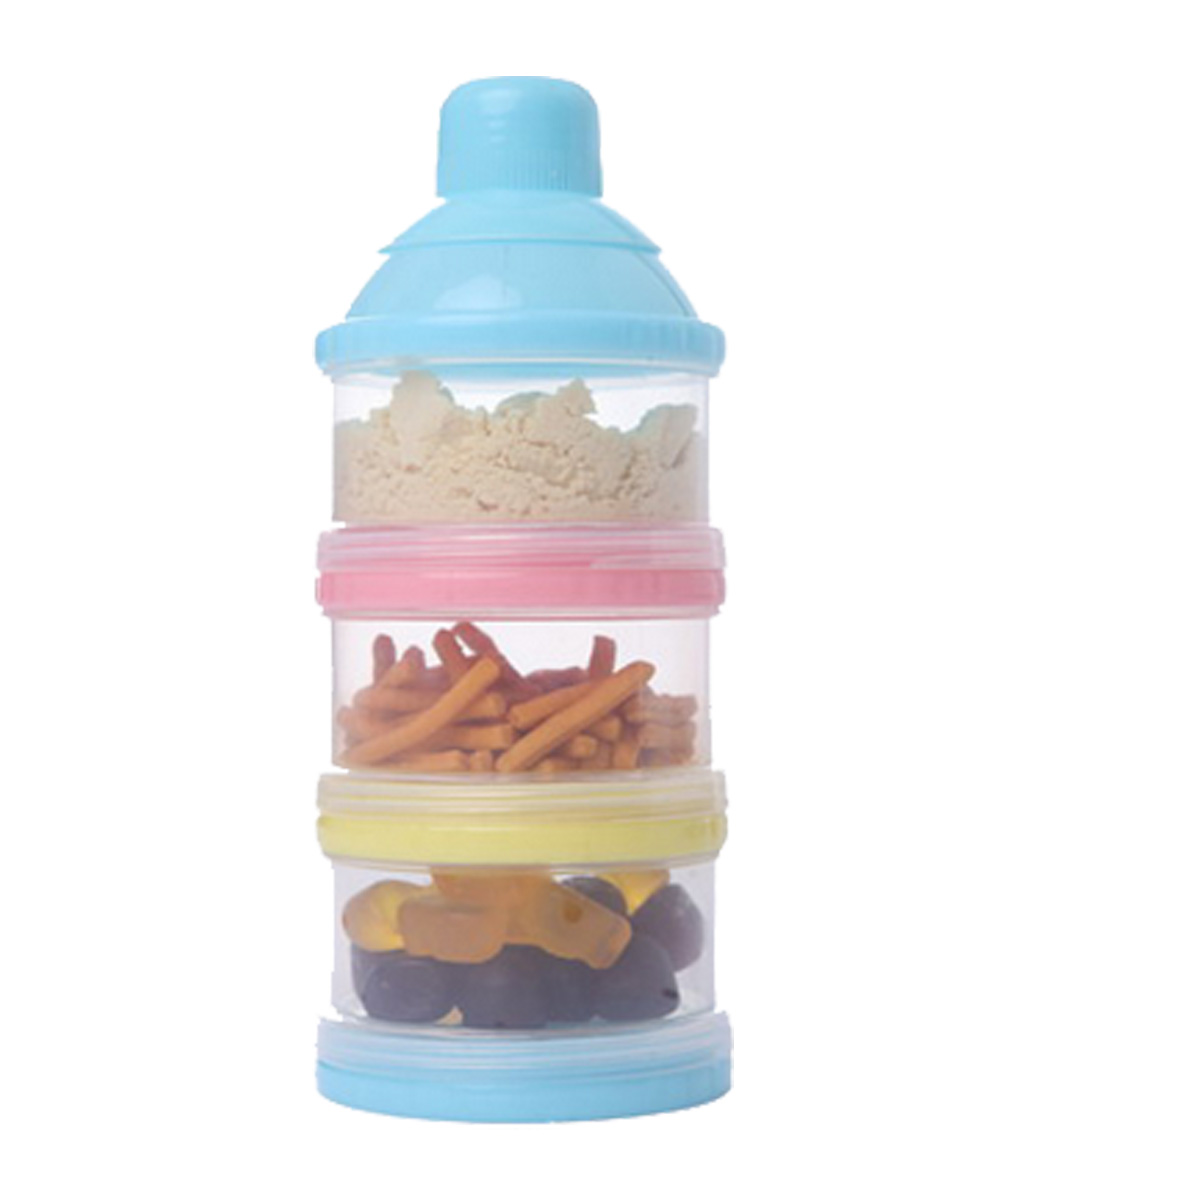 1 Set 3 Layer Portable Container Infant Food Milk Feeding Powder Dispenser Bottle Baby Travel Storage Box Products